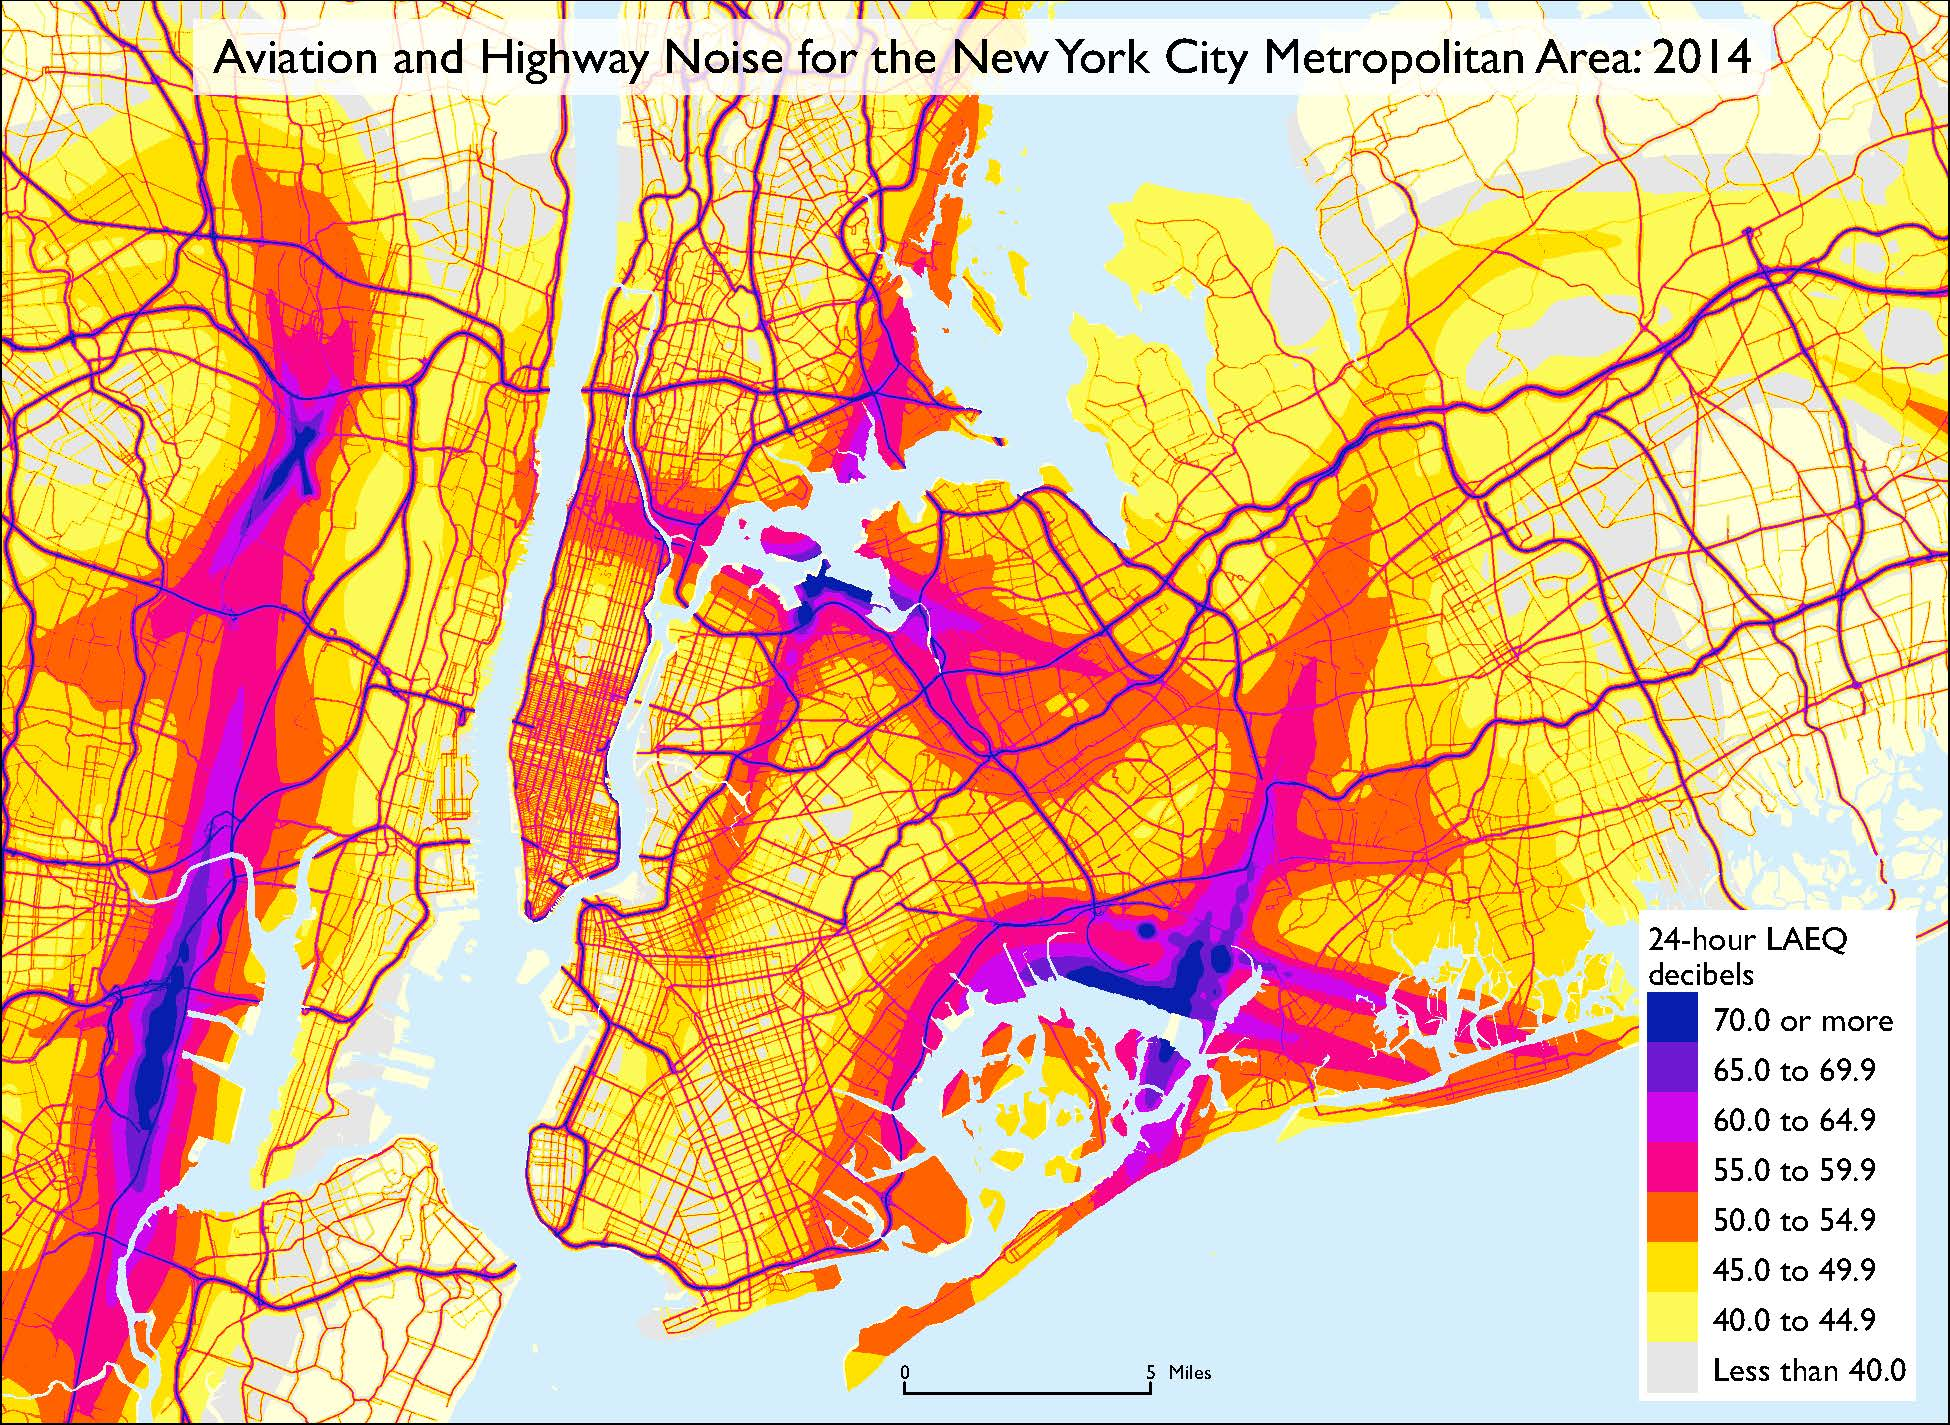 Noise pollution is worse in Jersey than NYC according to new DOT map on